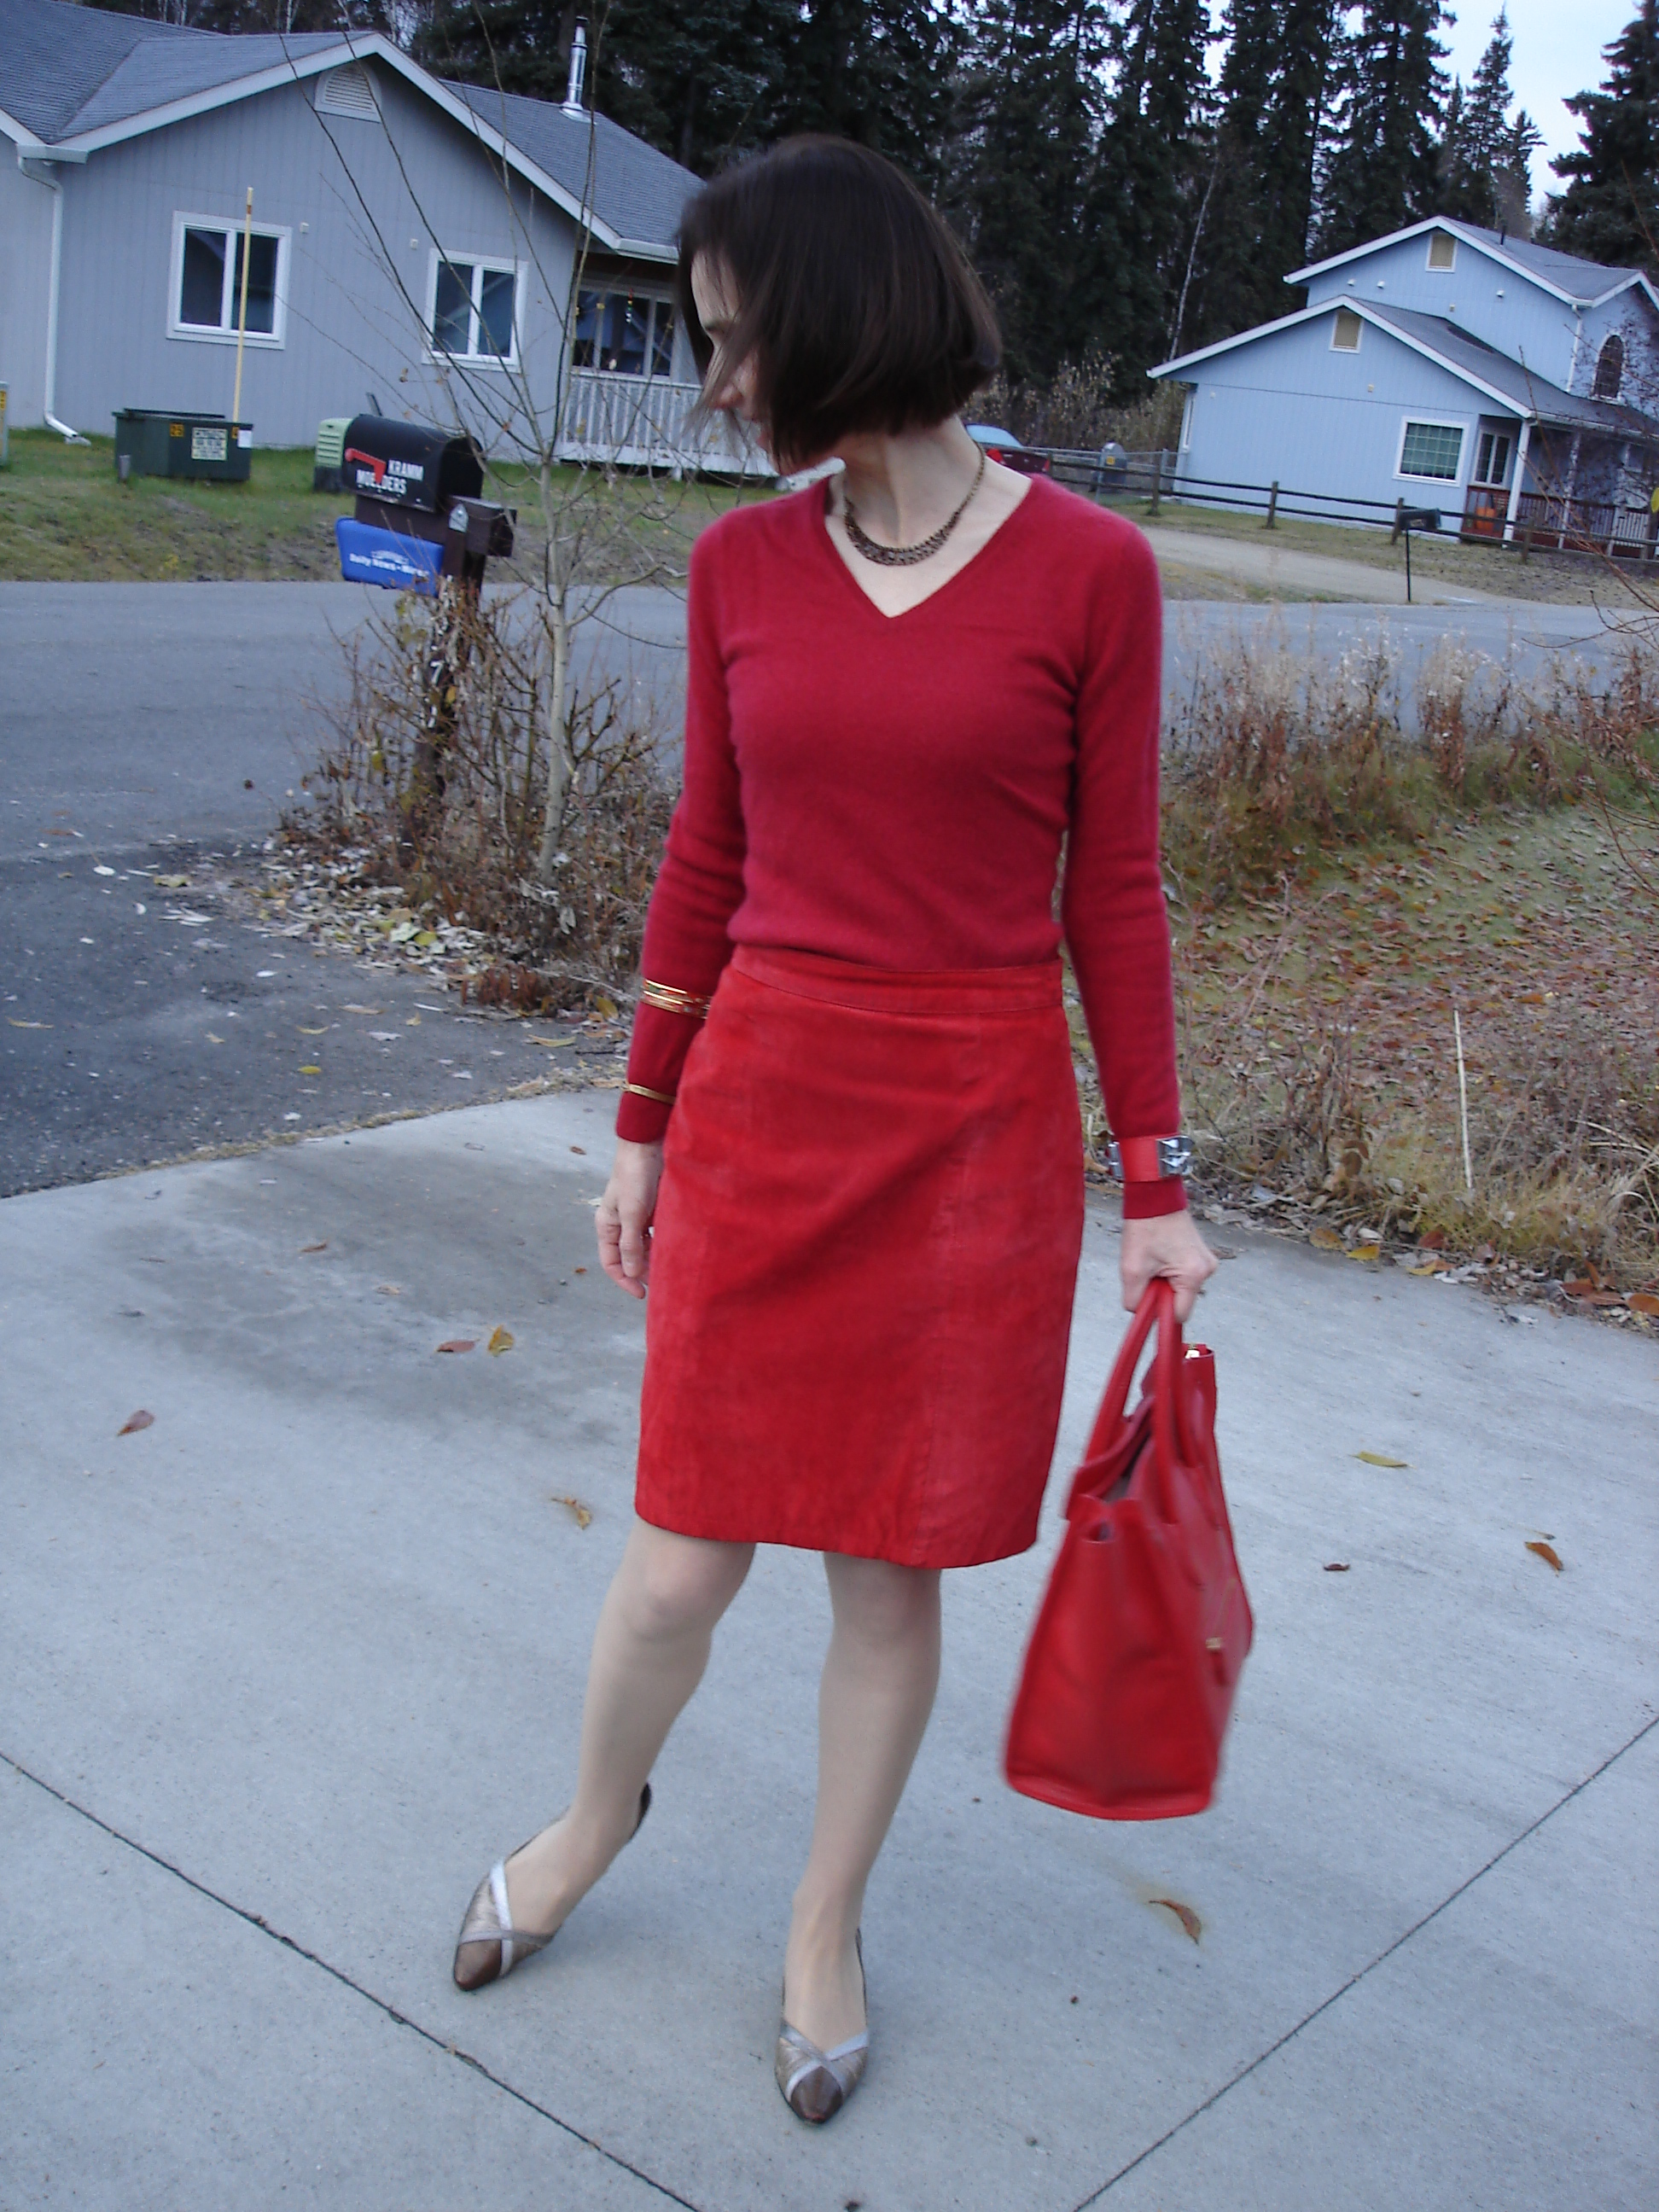 #fashionover50 older woman in an all red outfit